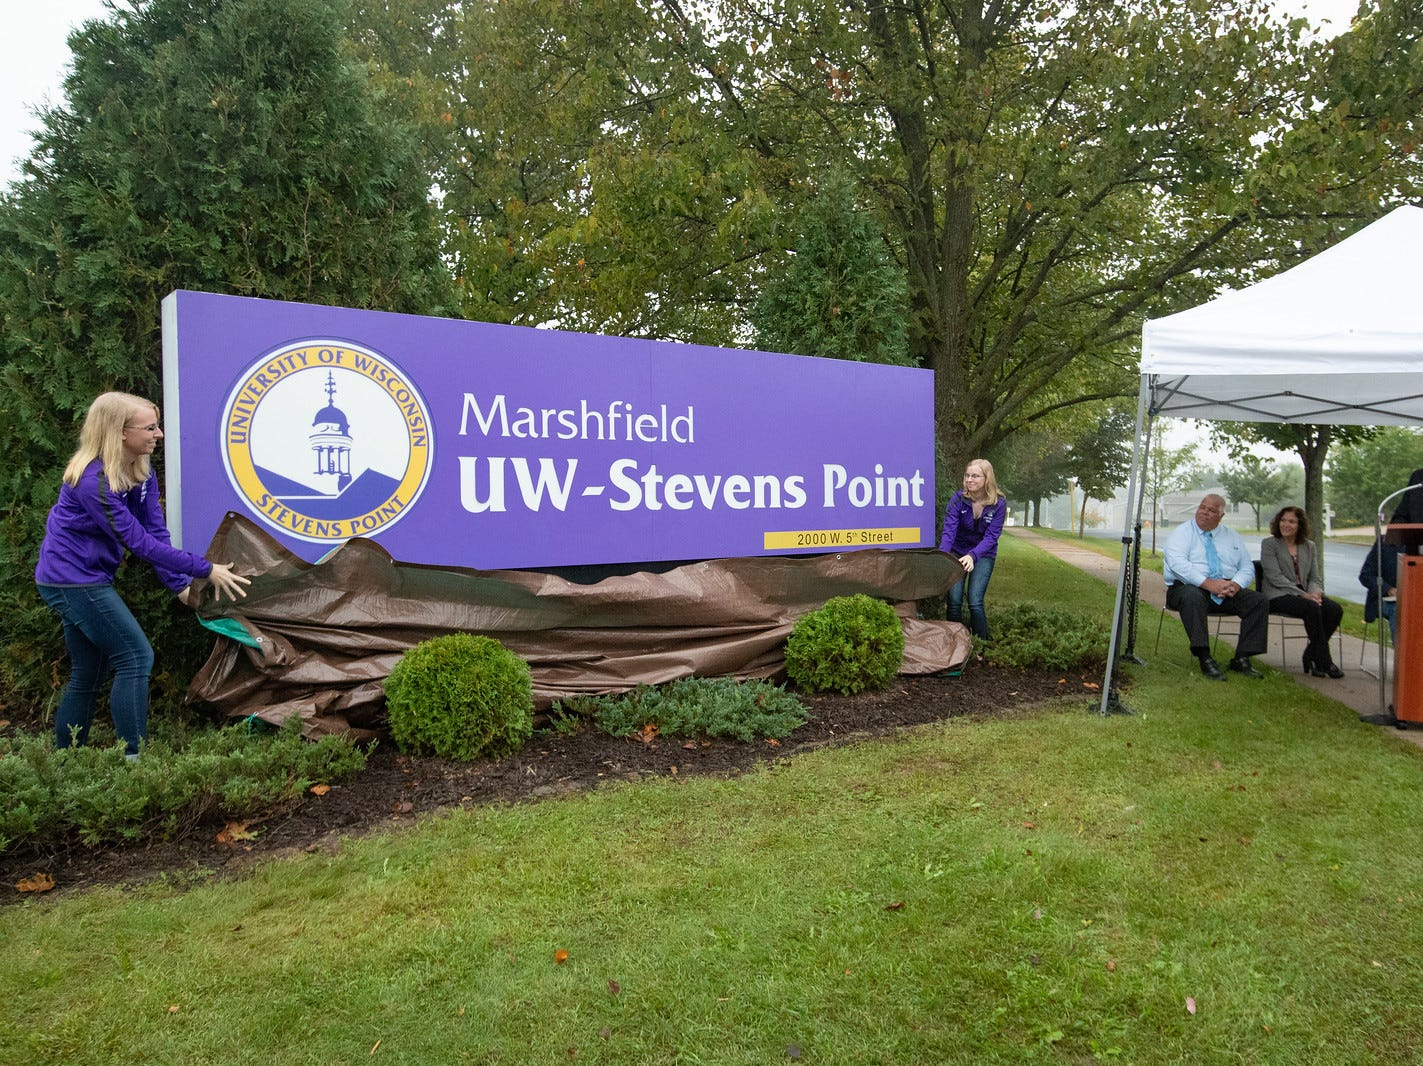 UW-Stevens Point at Marshfield students Tiffany Guden, left, and Tara Guden unveil a new campus sign Sept. 19 along West Fifth Street in Marshfield on the former UW-Marshfield/Wood County campus.